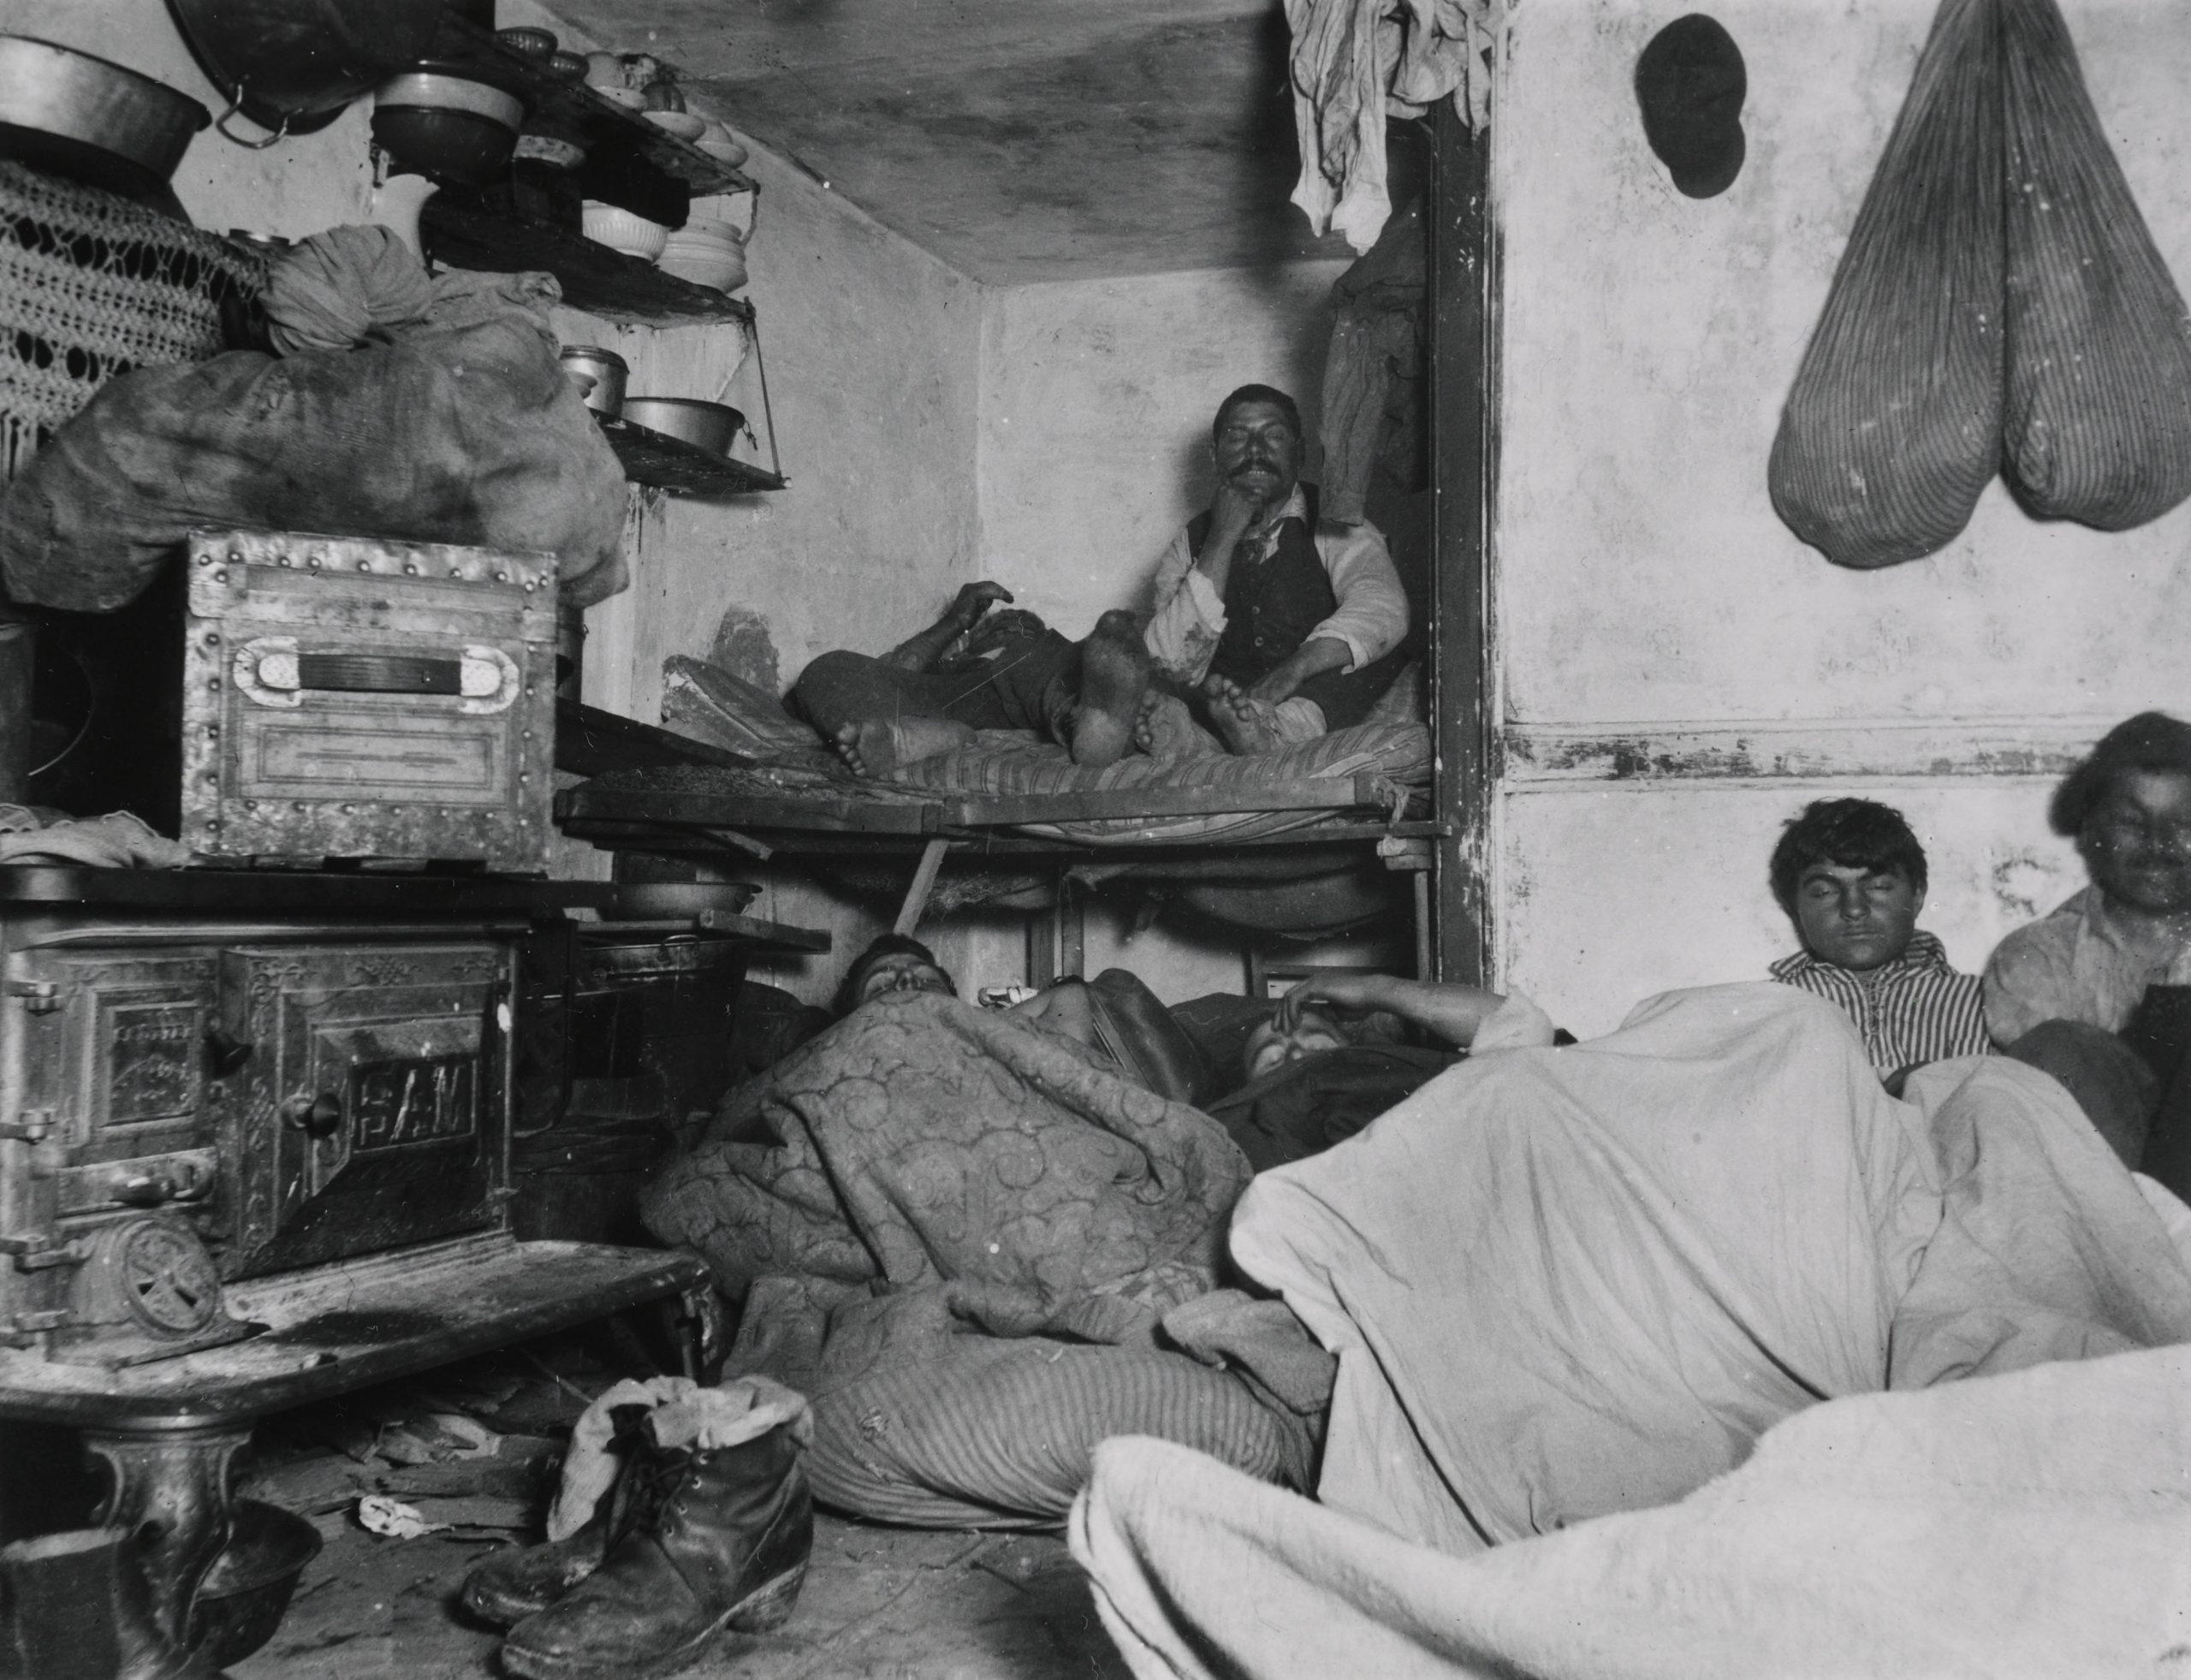 Tenement lodgers in a crowded room